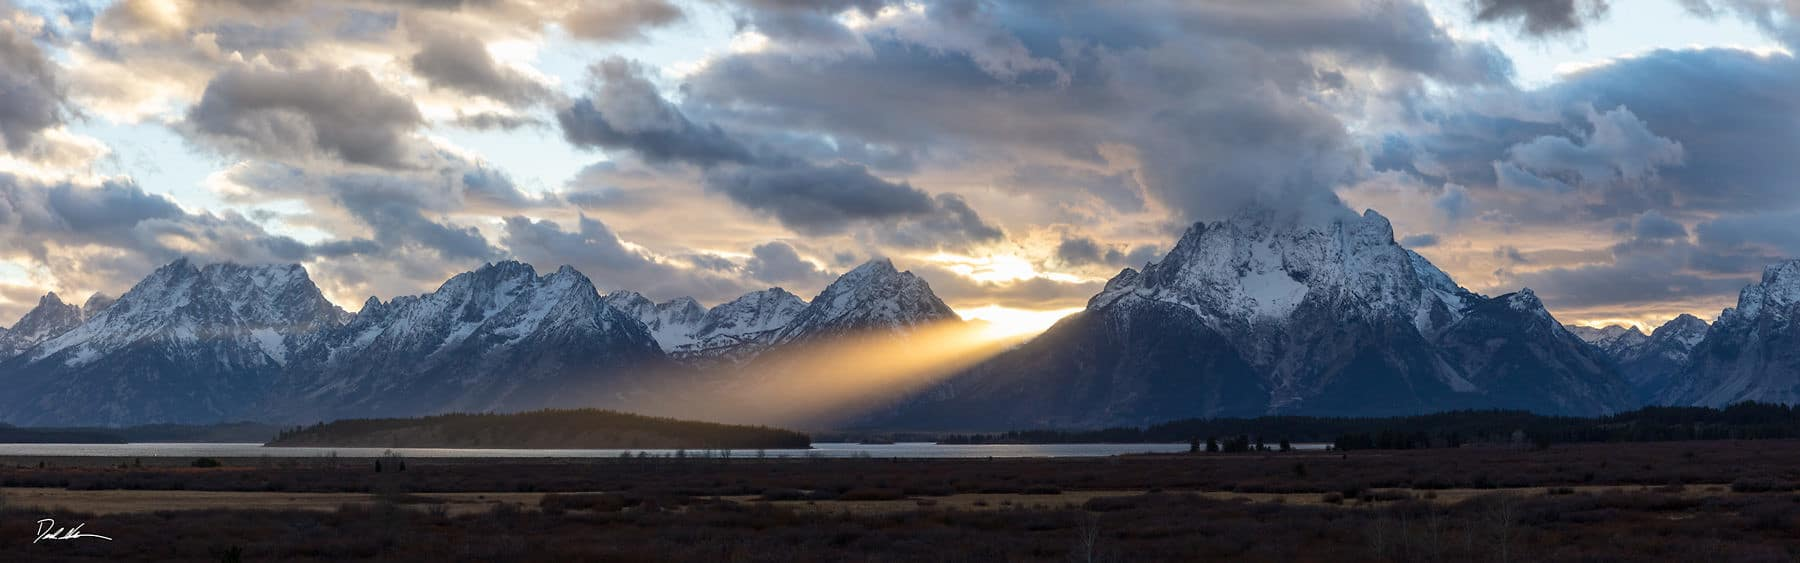 a sunbeam splits the Tetons mountains at sunset